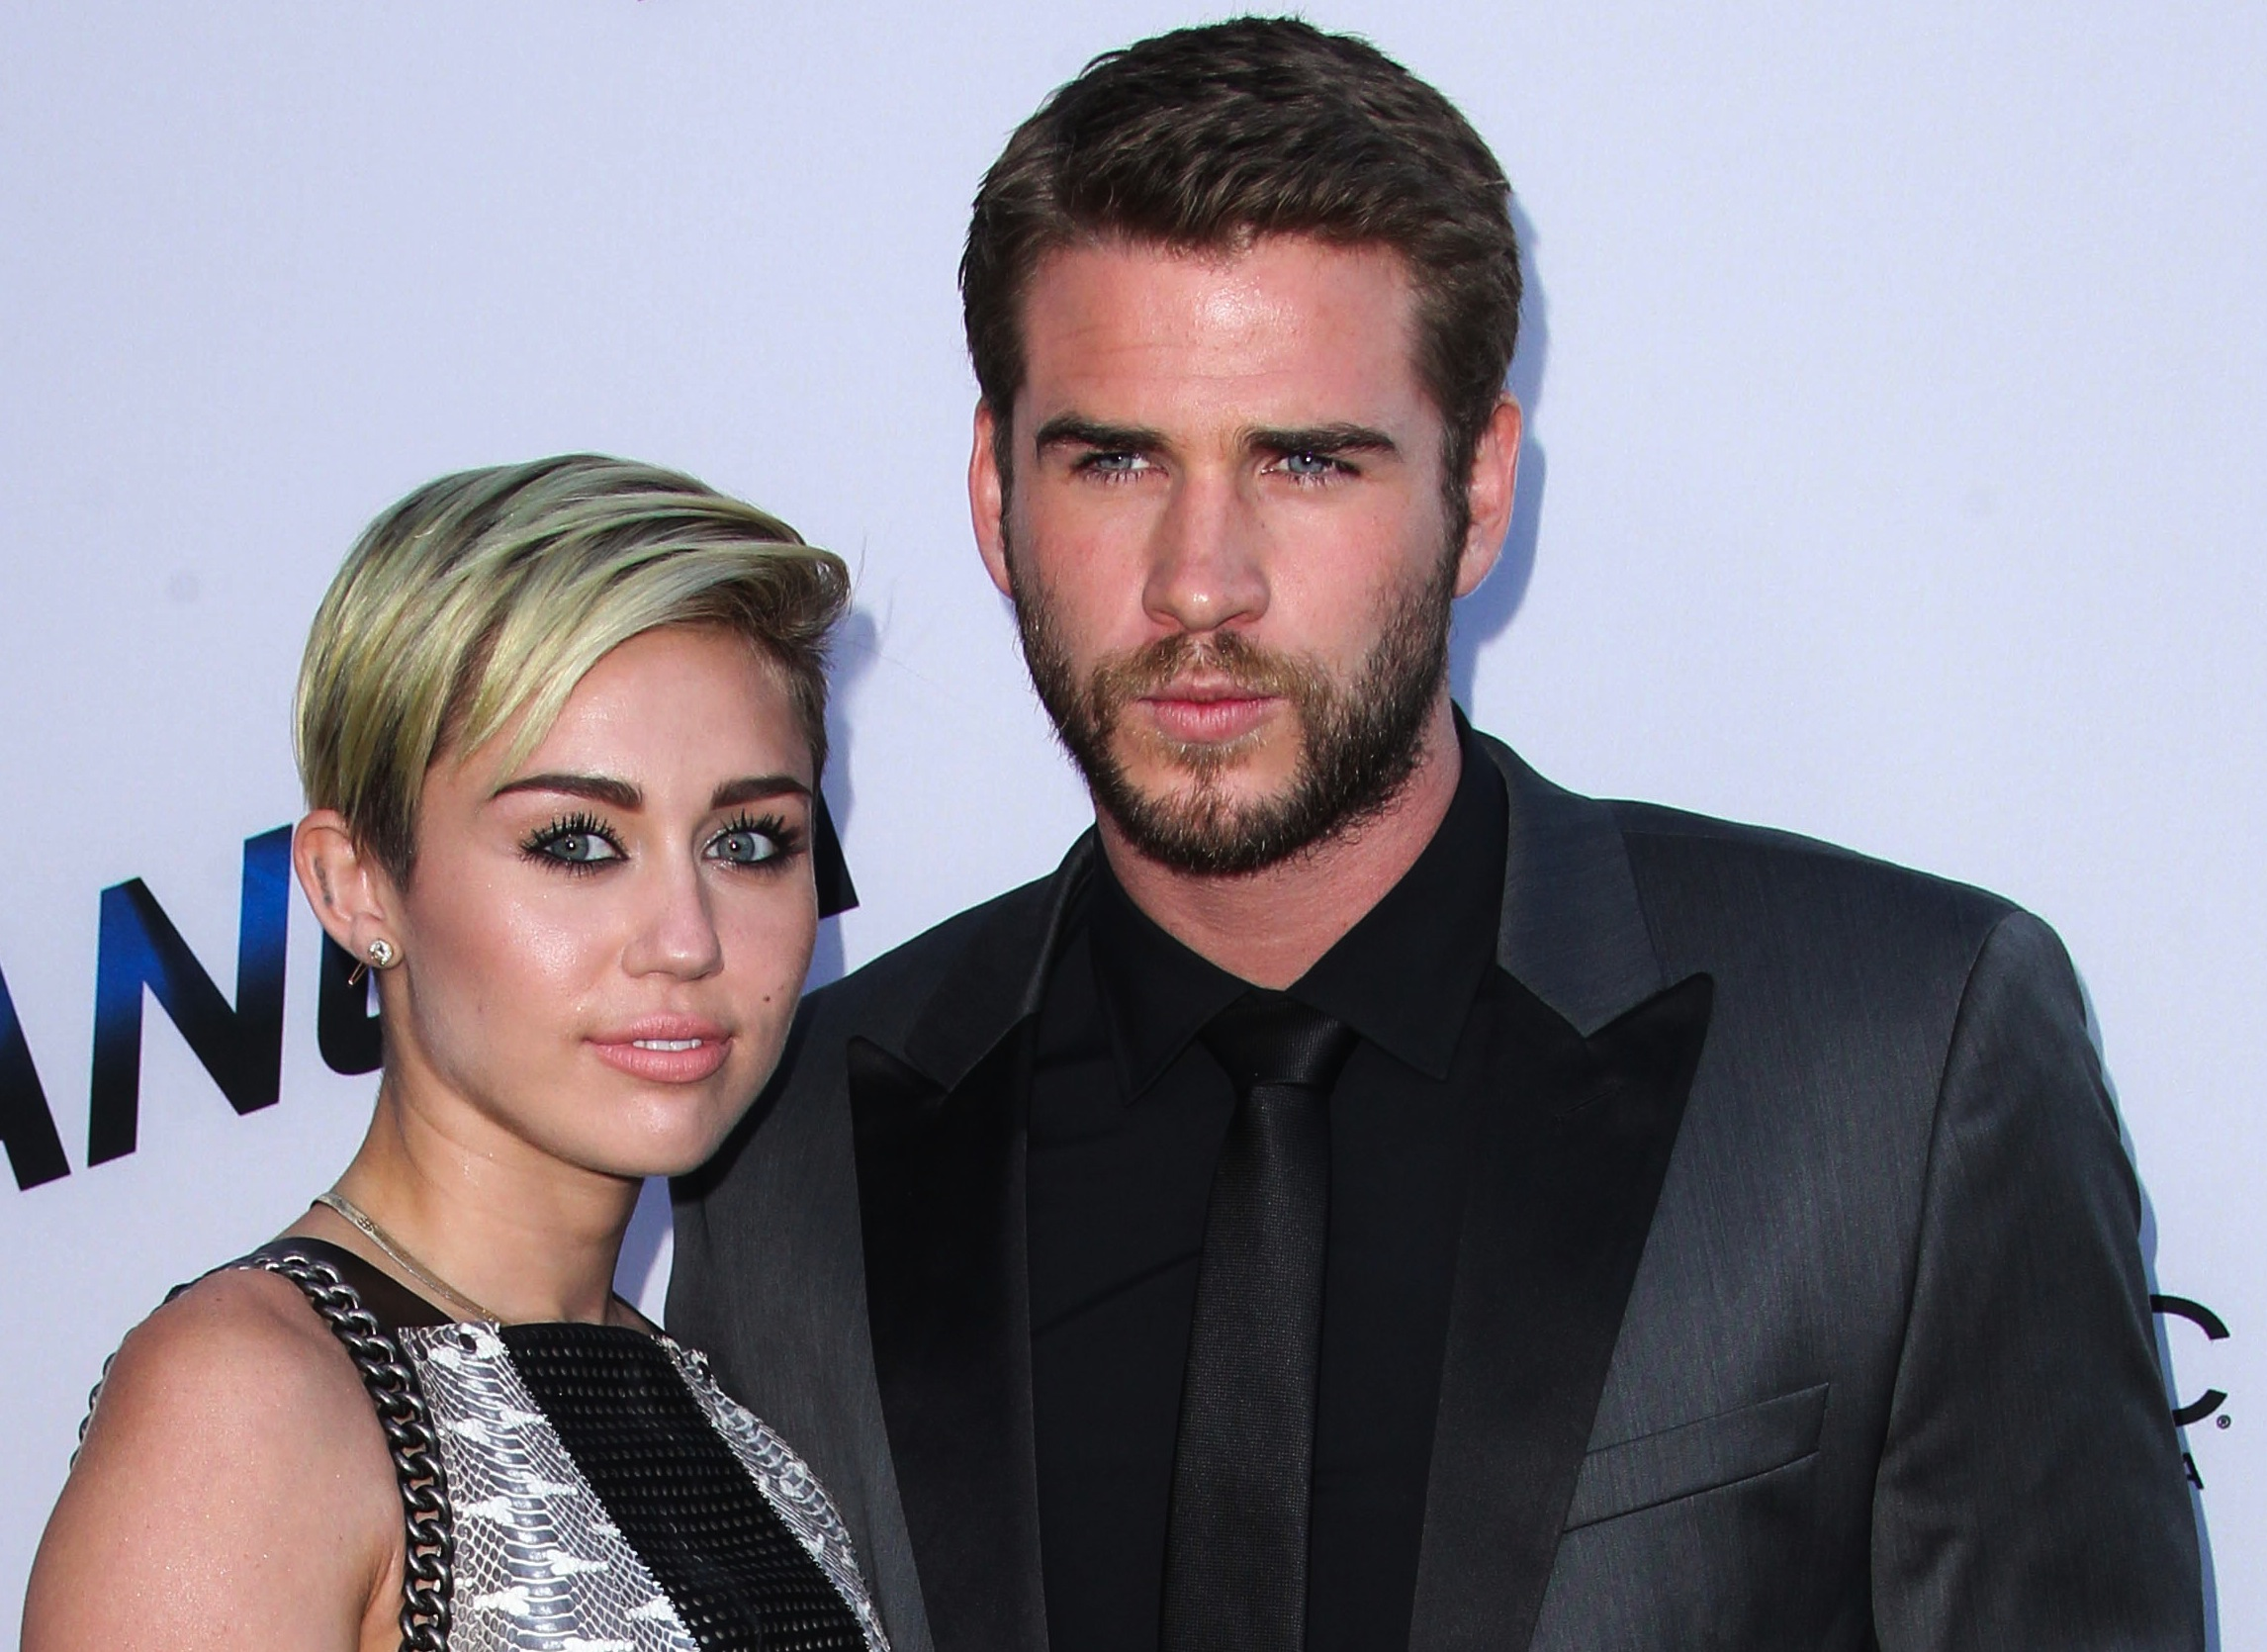 Miley Cyrus and Liam Hemsworth call off engagement